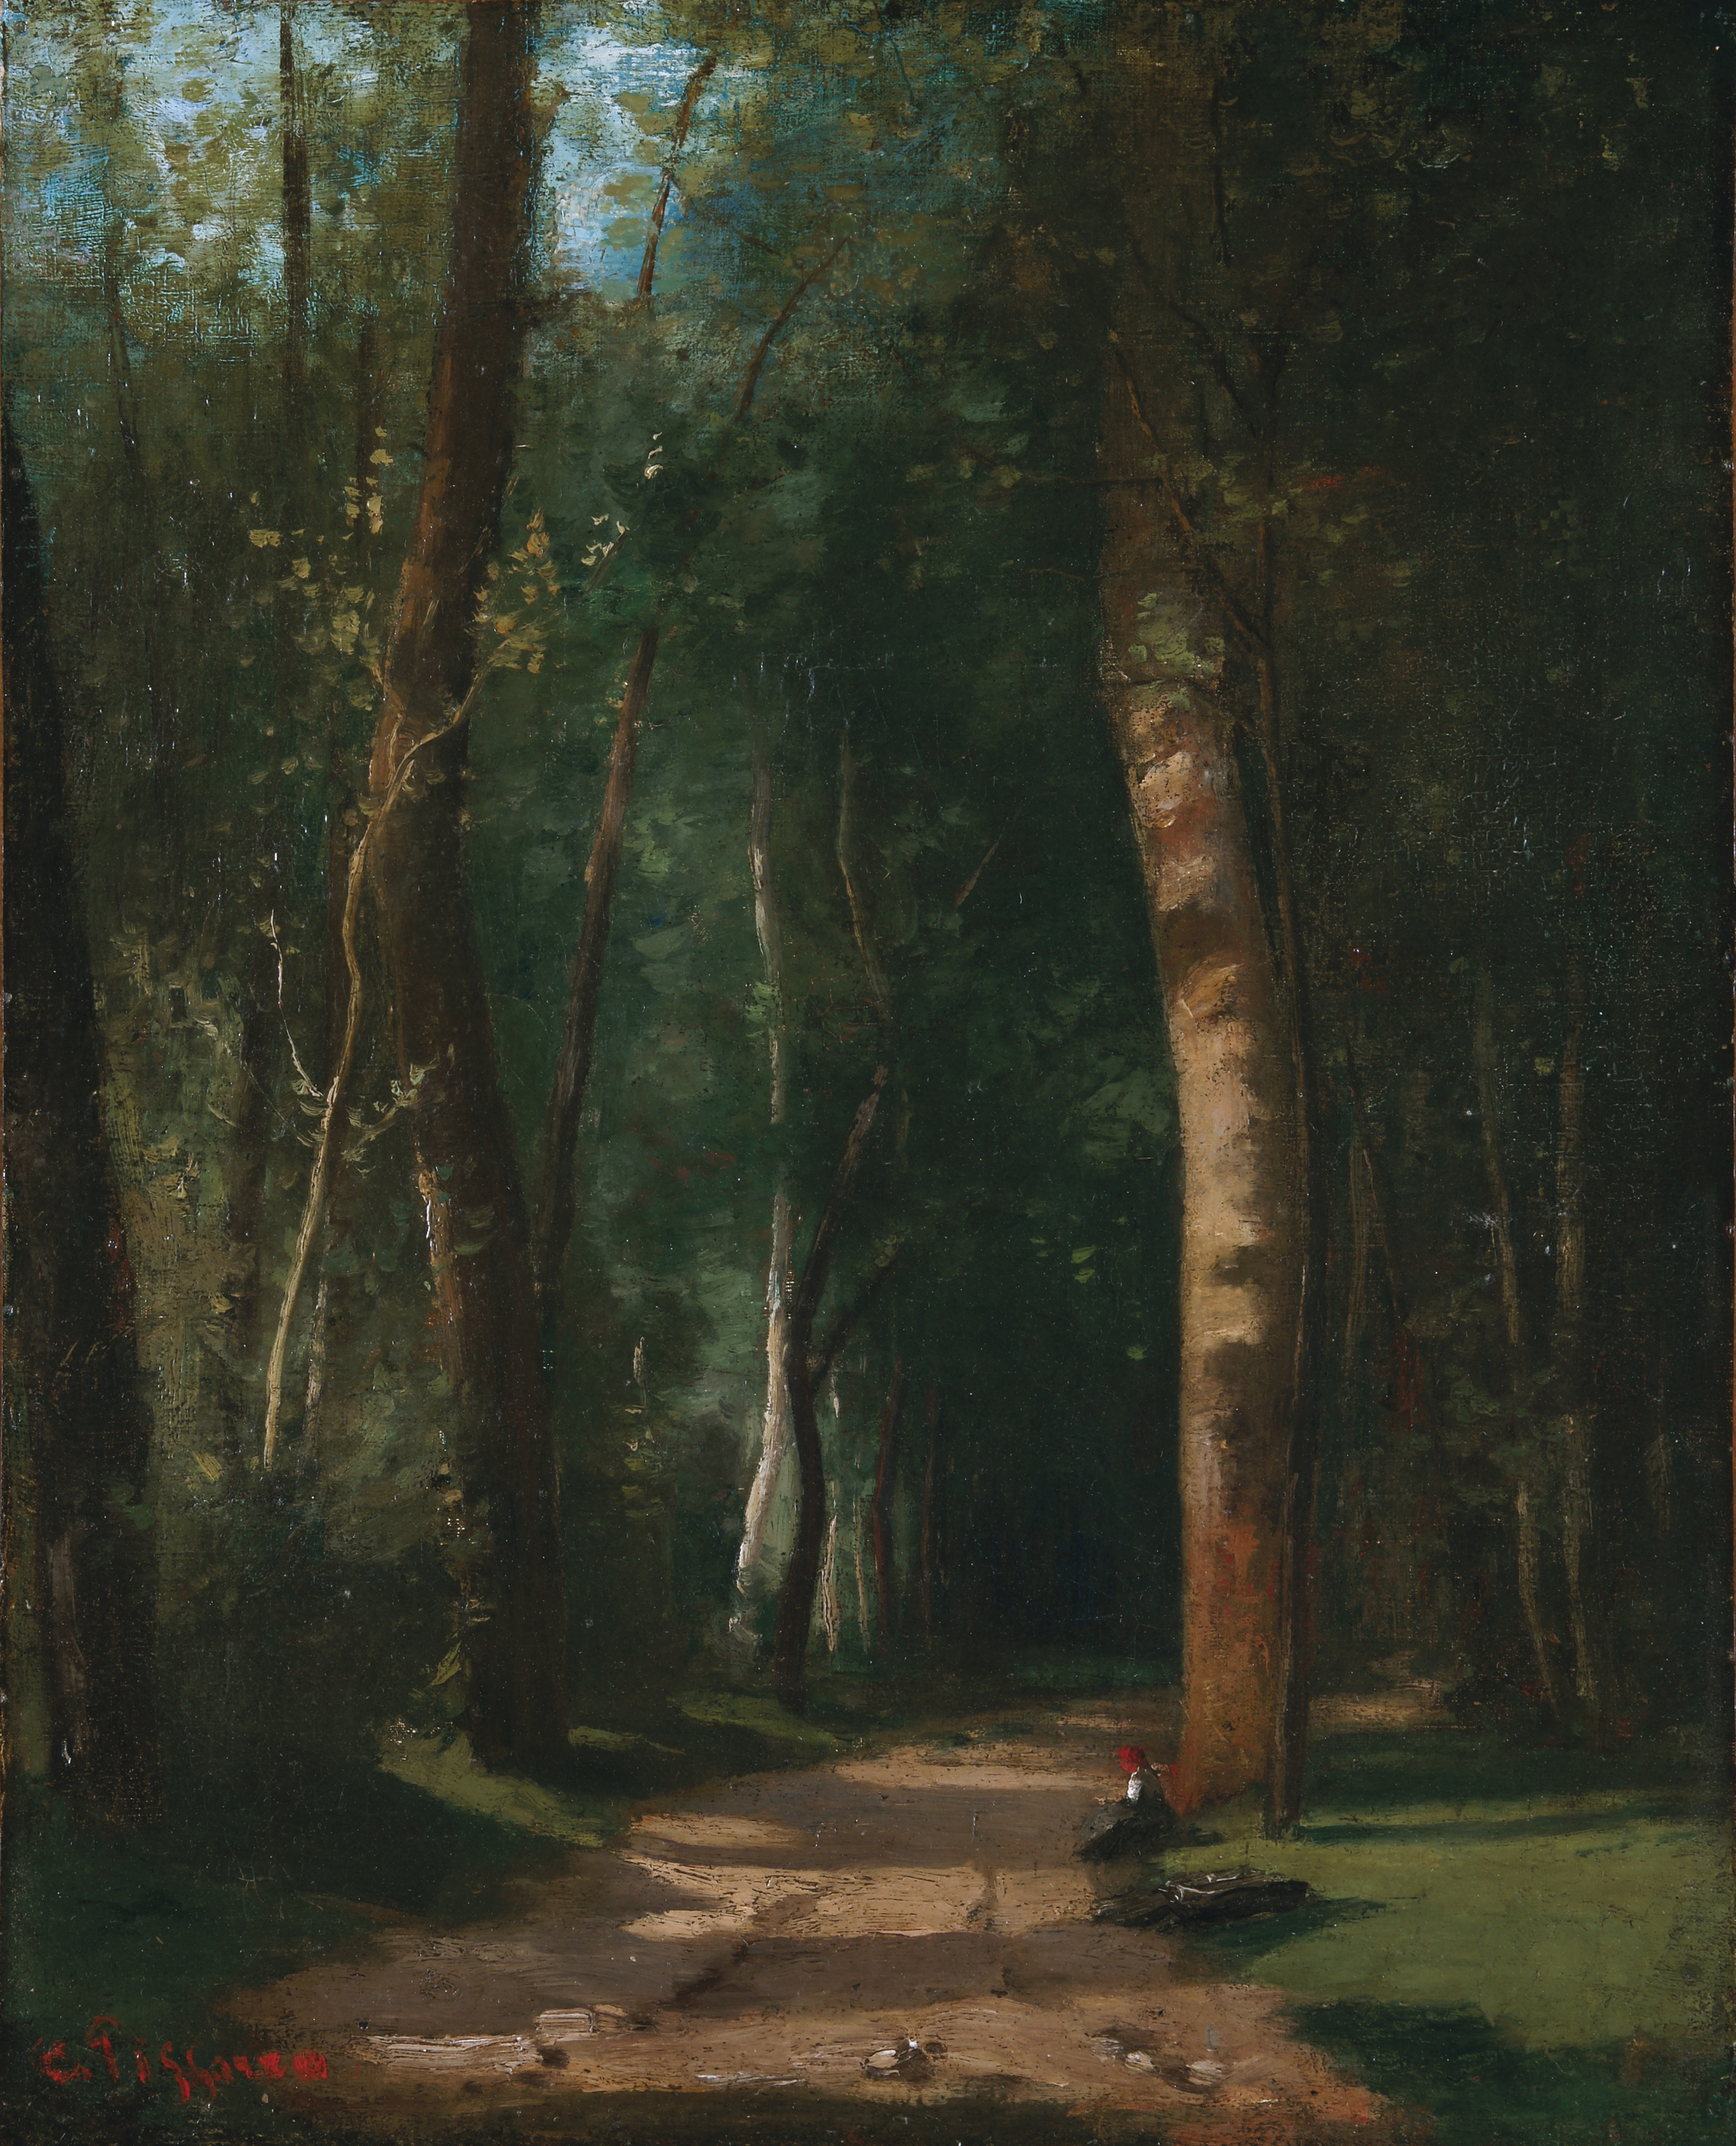 Road In A Forest 1859